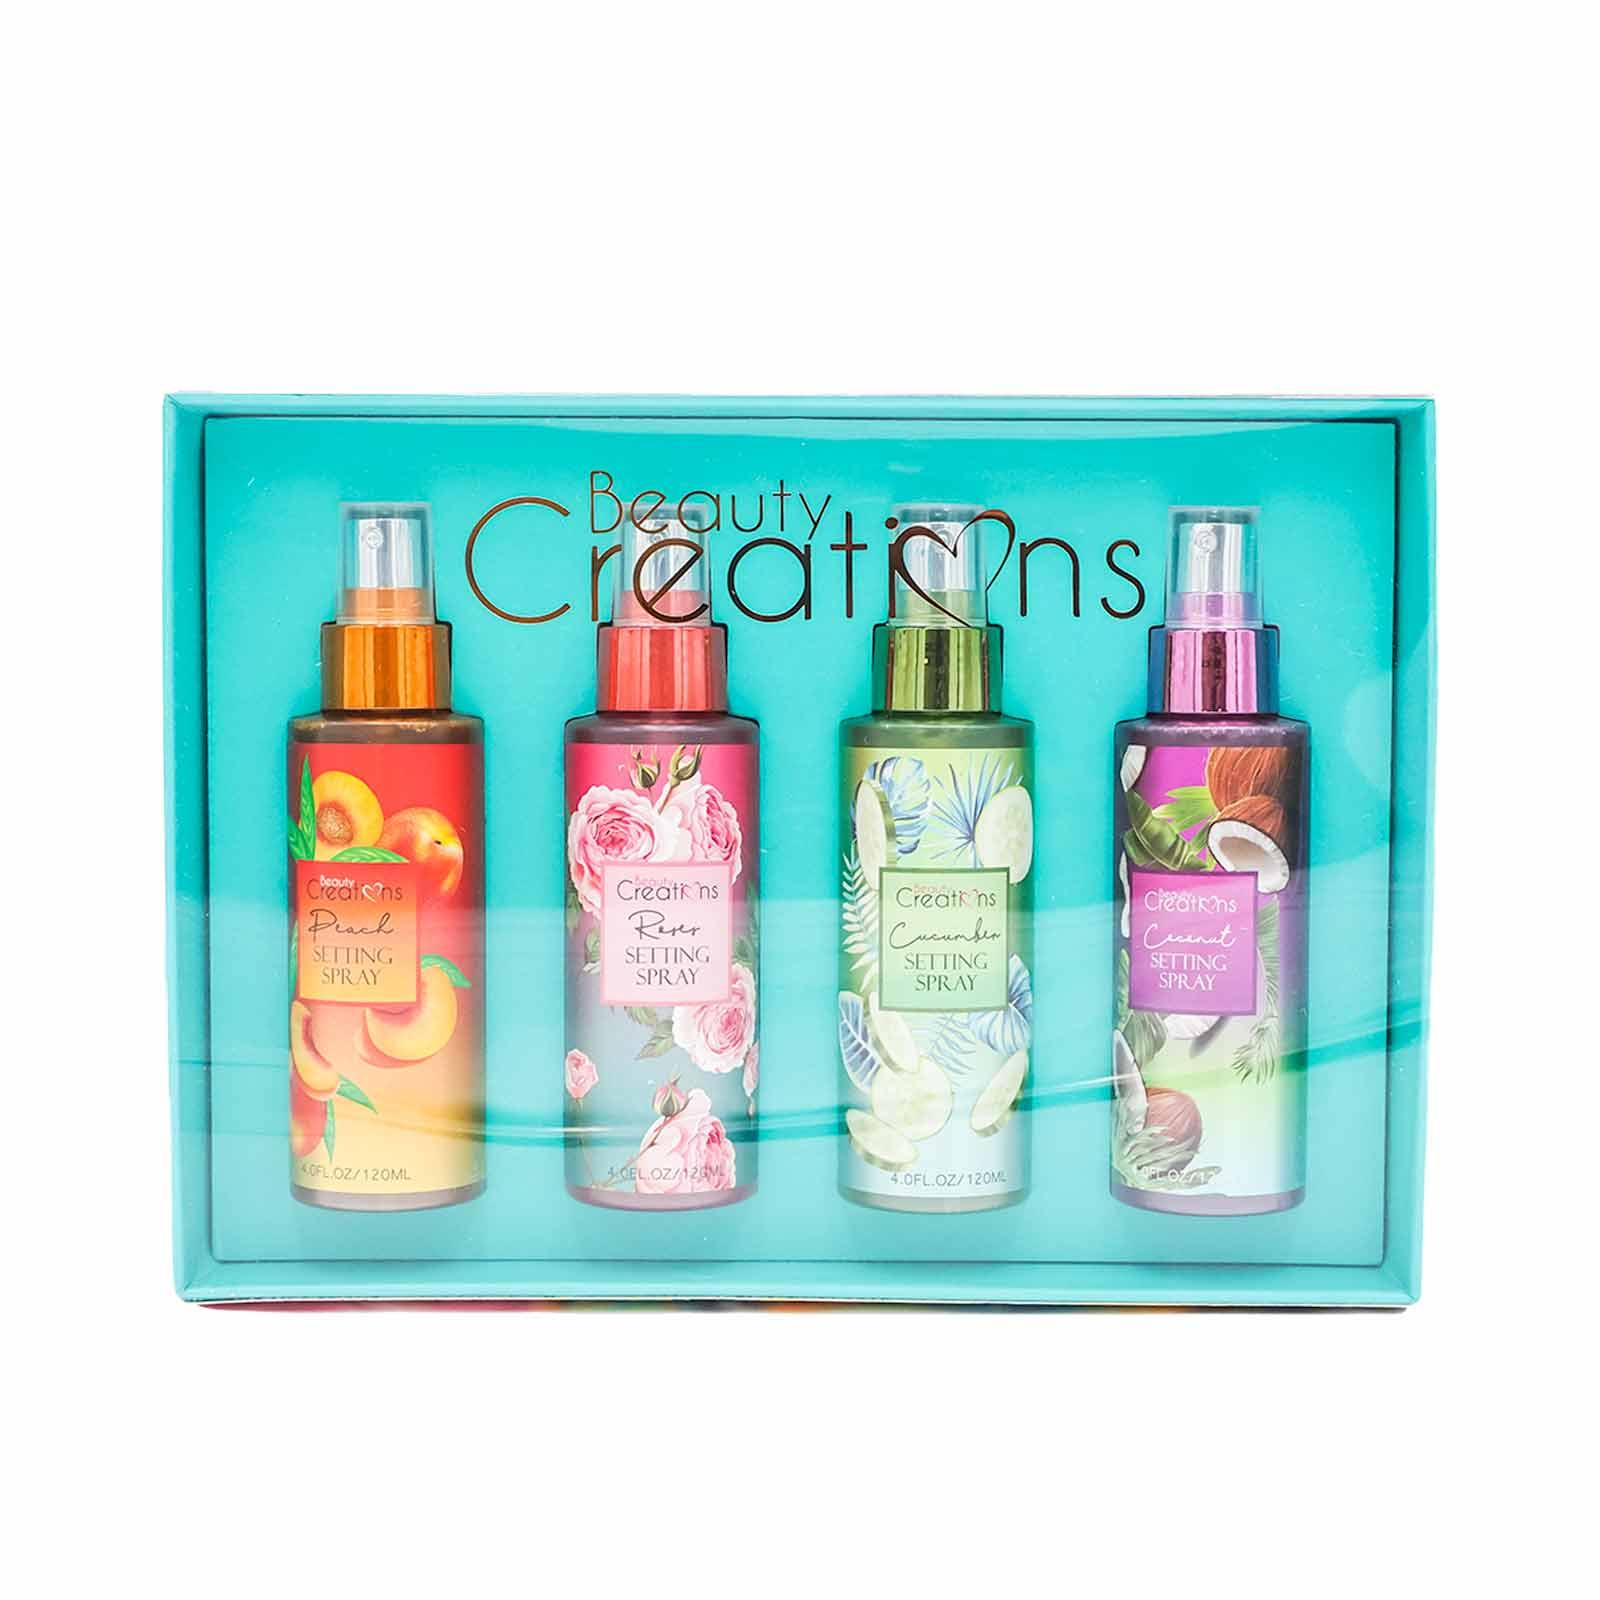 BEAUTY CREATIONS SETTING SPRAY SET SPS SET (6/cs)